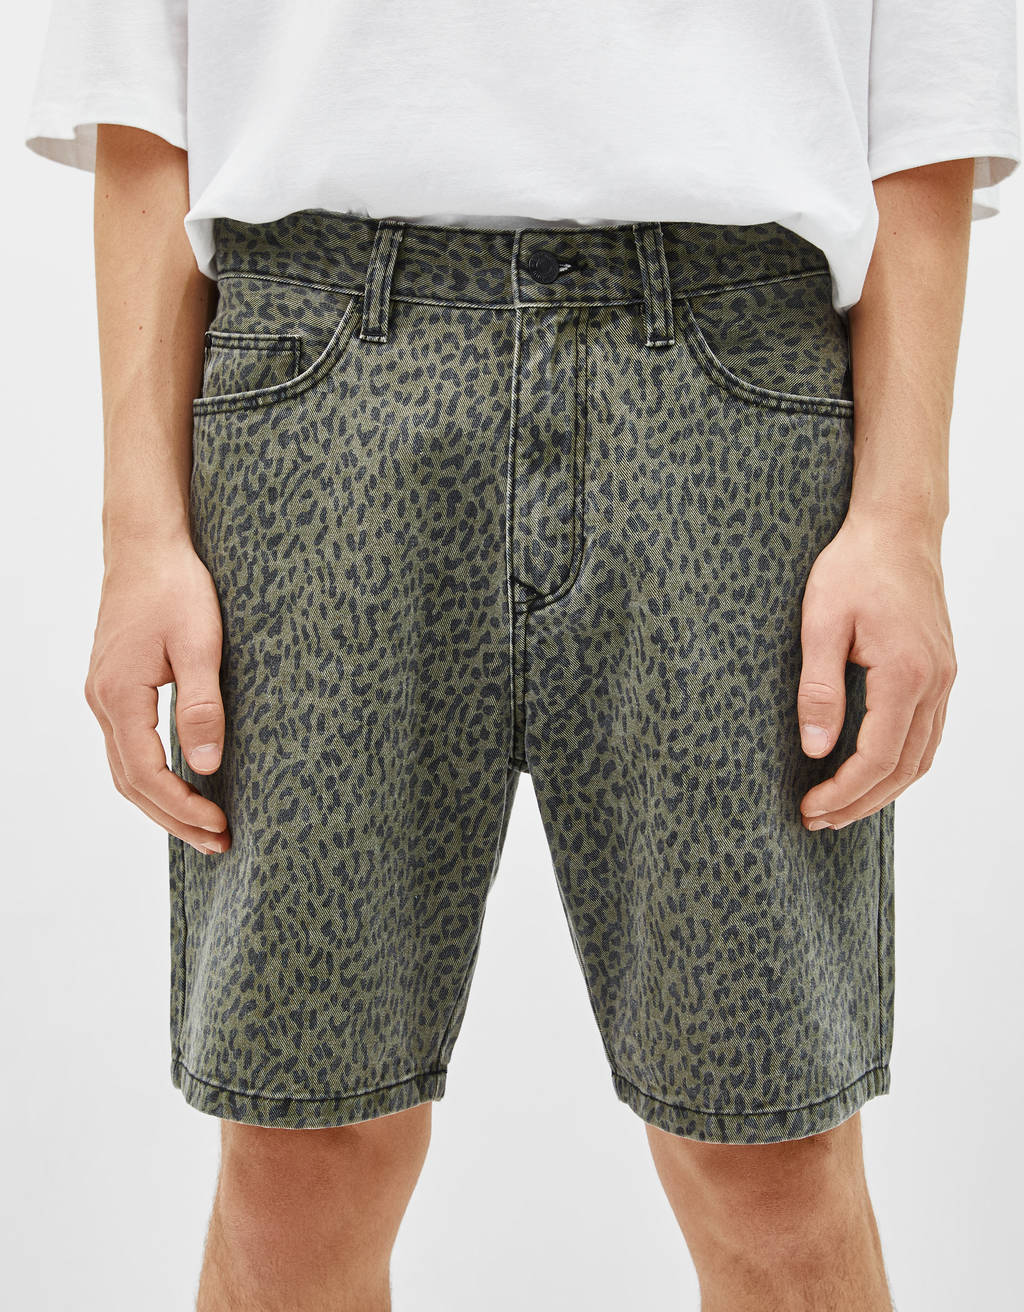 Calções bermuda dad fit com animal print